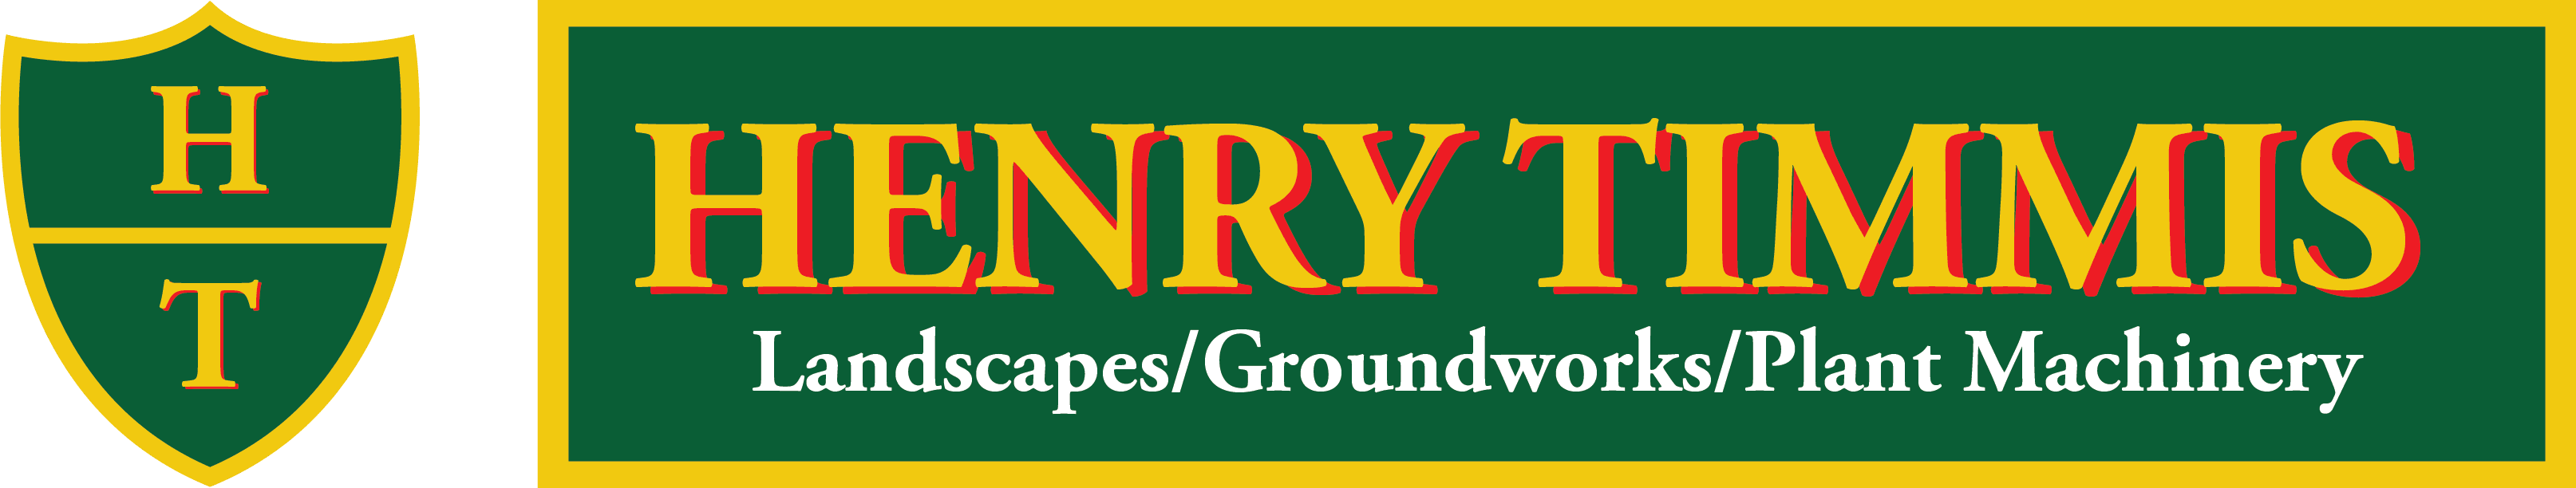 Henry Timmis Landscapes/Groundworks/Plant Machinery Devizes Logo 2020